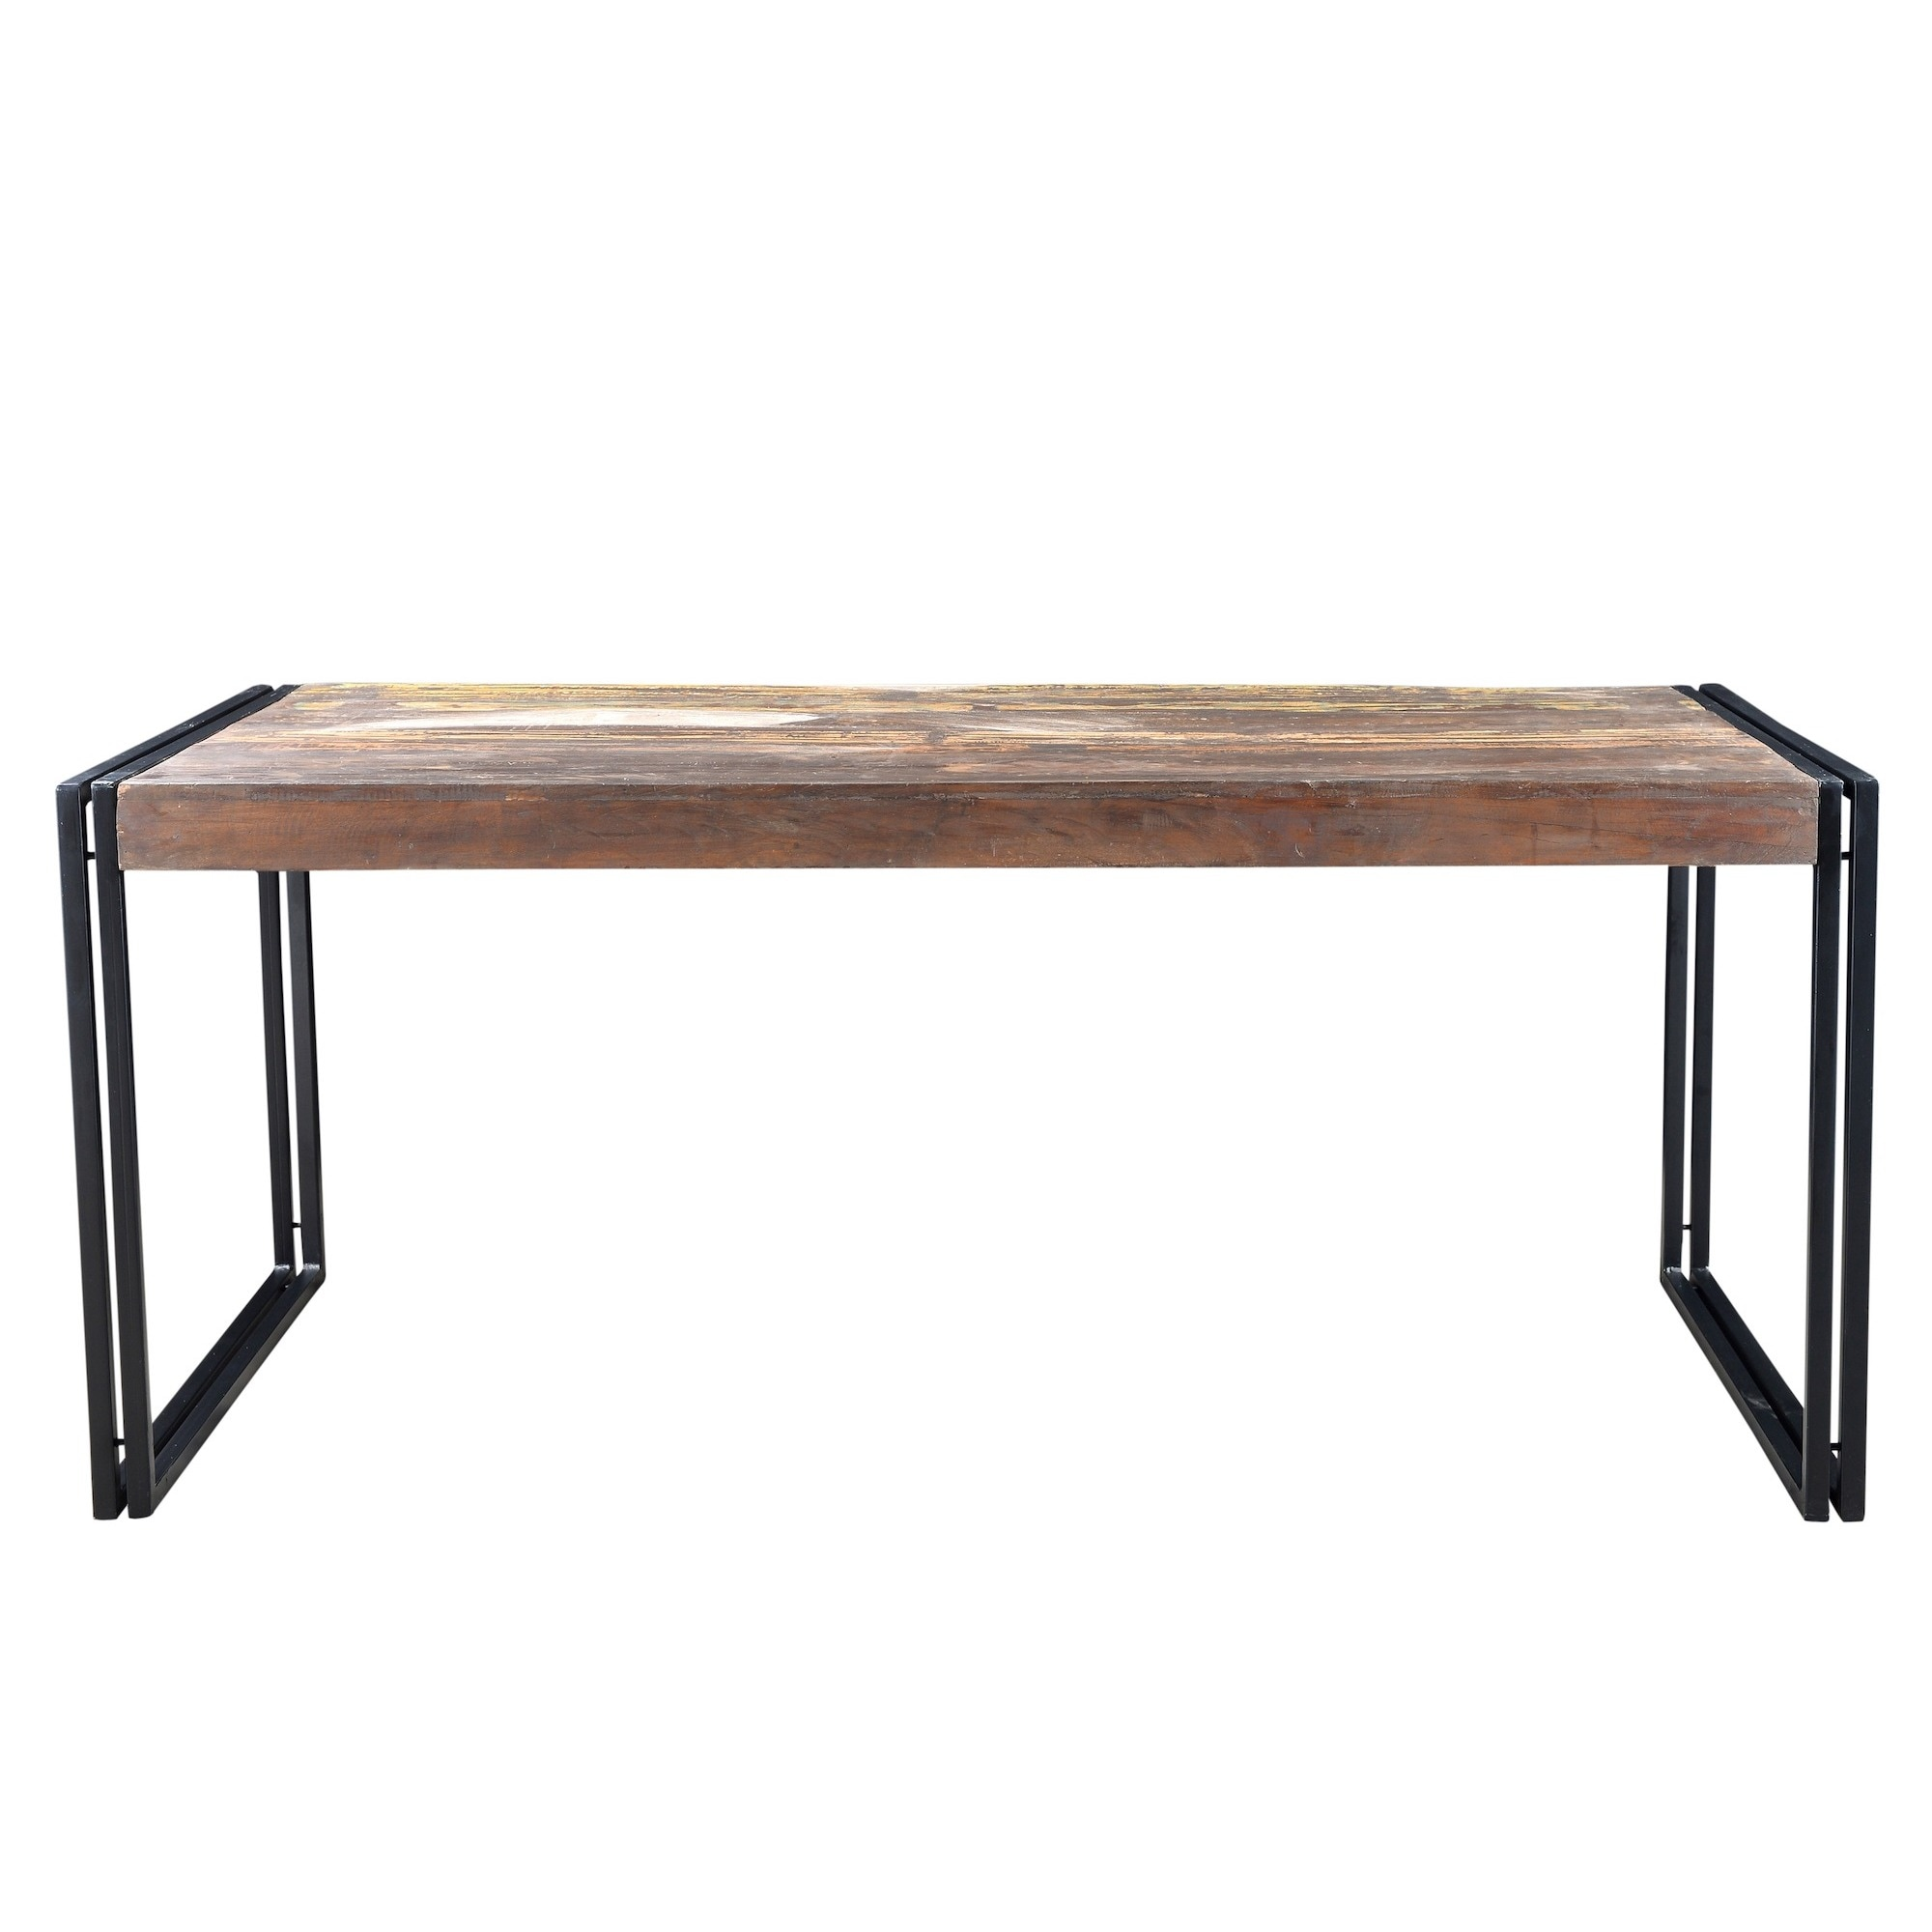 Shop Handmade Timbergirl Old Reclaimed Wood Dining Table With Iron - Reclaimed wood and iron dining table